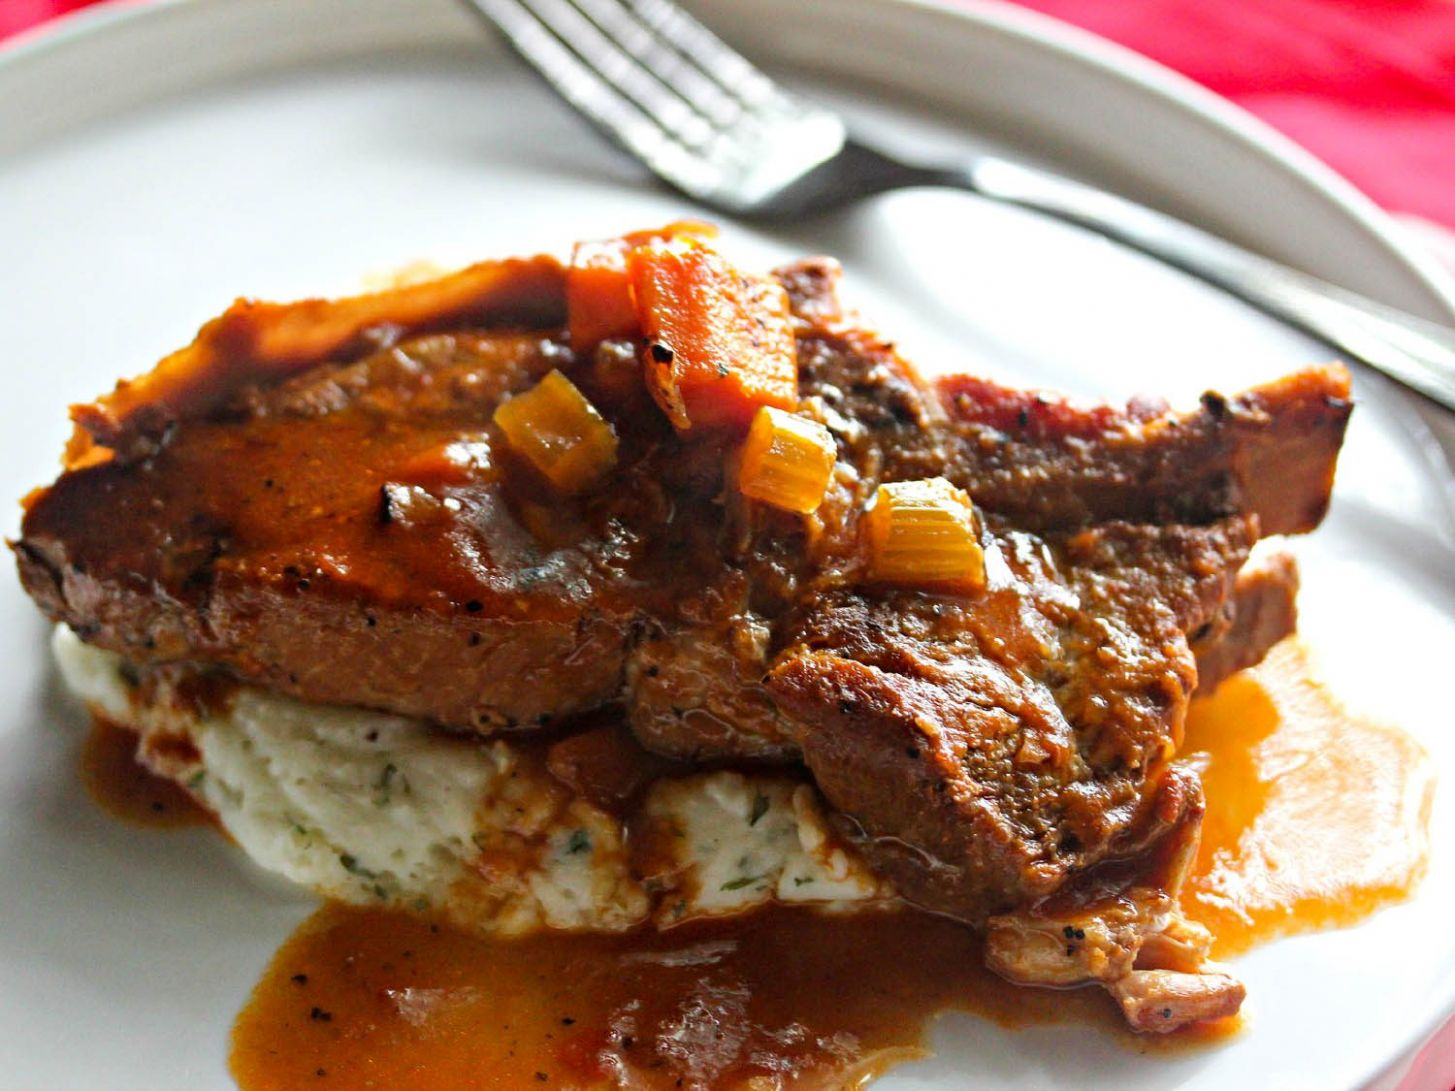 Cider-Braised Country-Style Pork Ribs With Creamy Mashed Potatoes Recipe - Recipes Pork Ribs Country Style